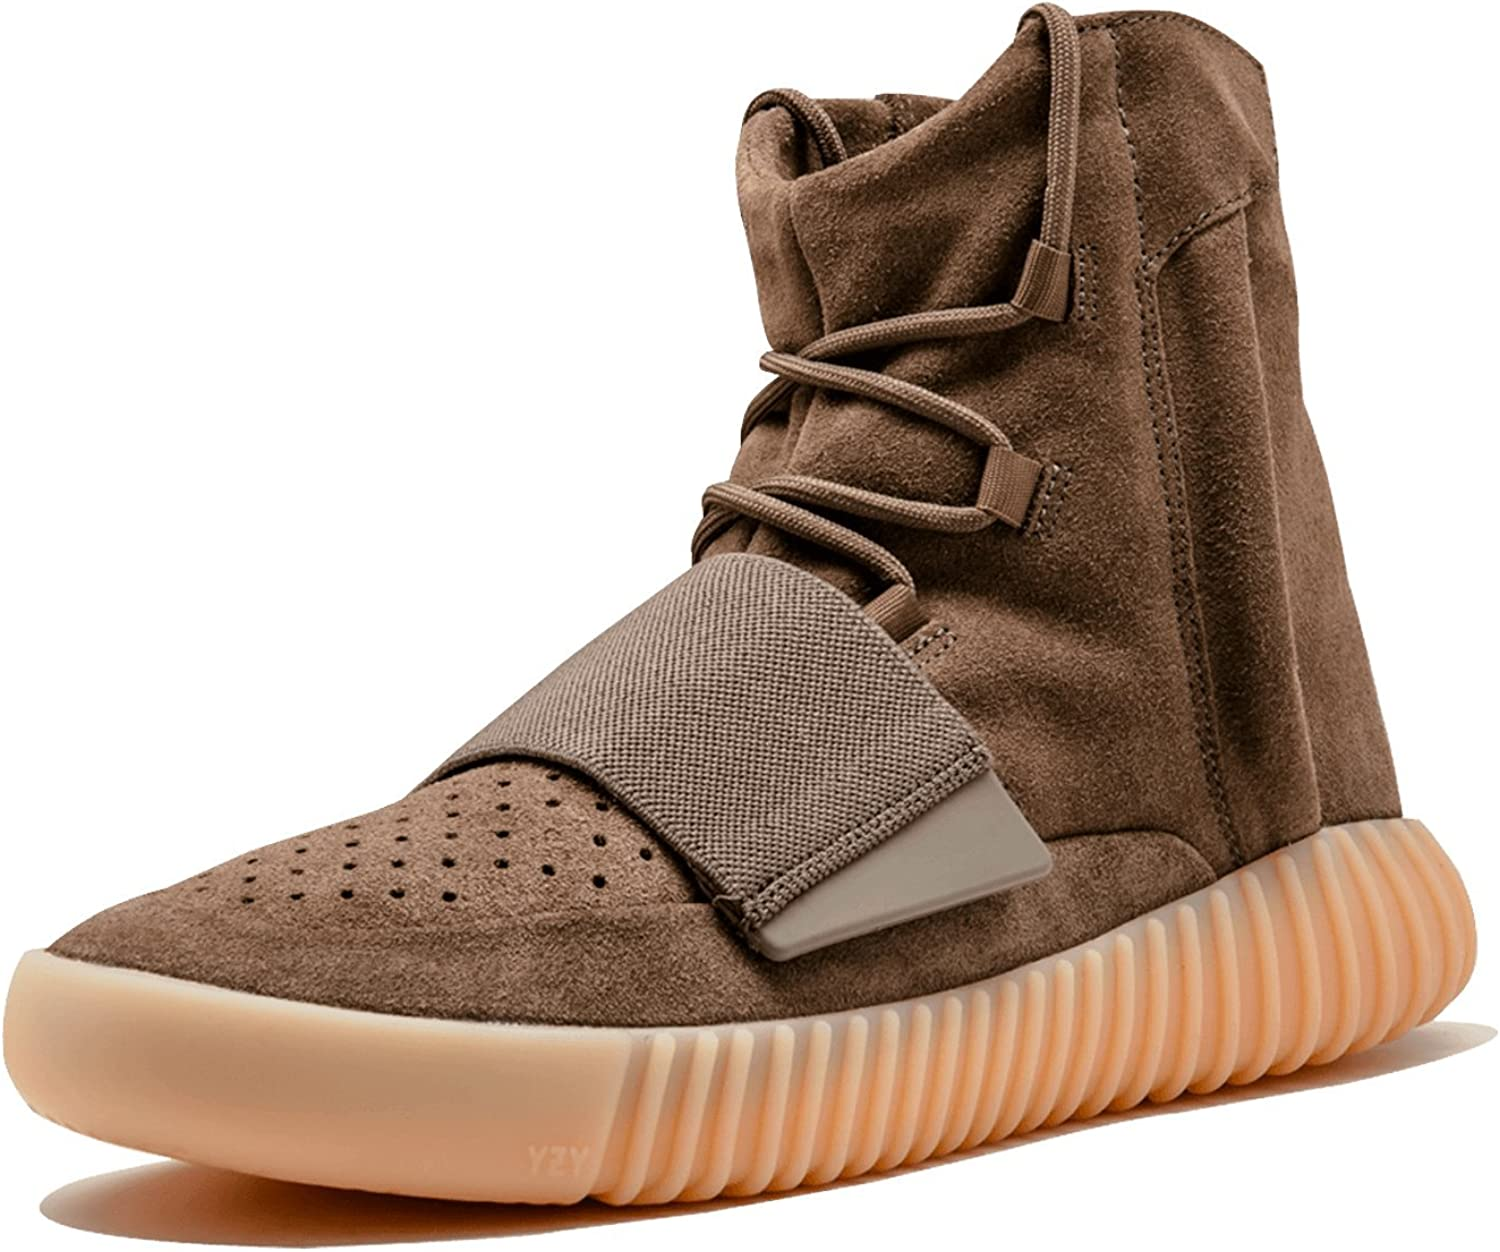 estrecho forma Escudero  Amazon.com | adidas Yeezy Boost 750 - BY2456 | Road Running